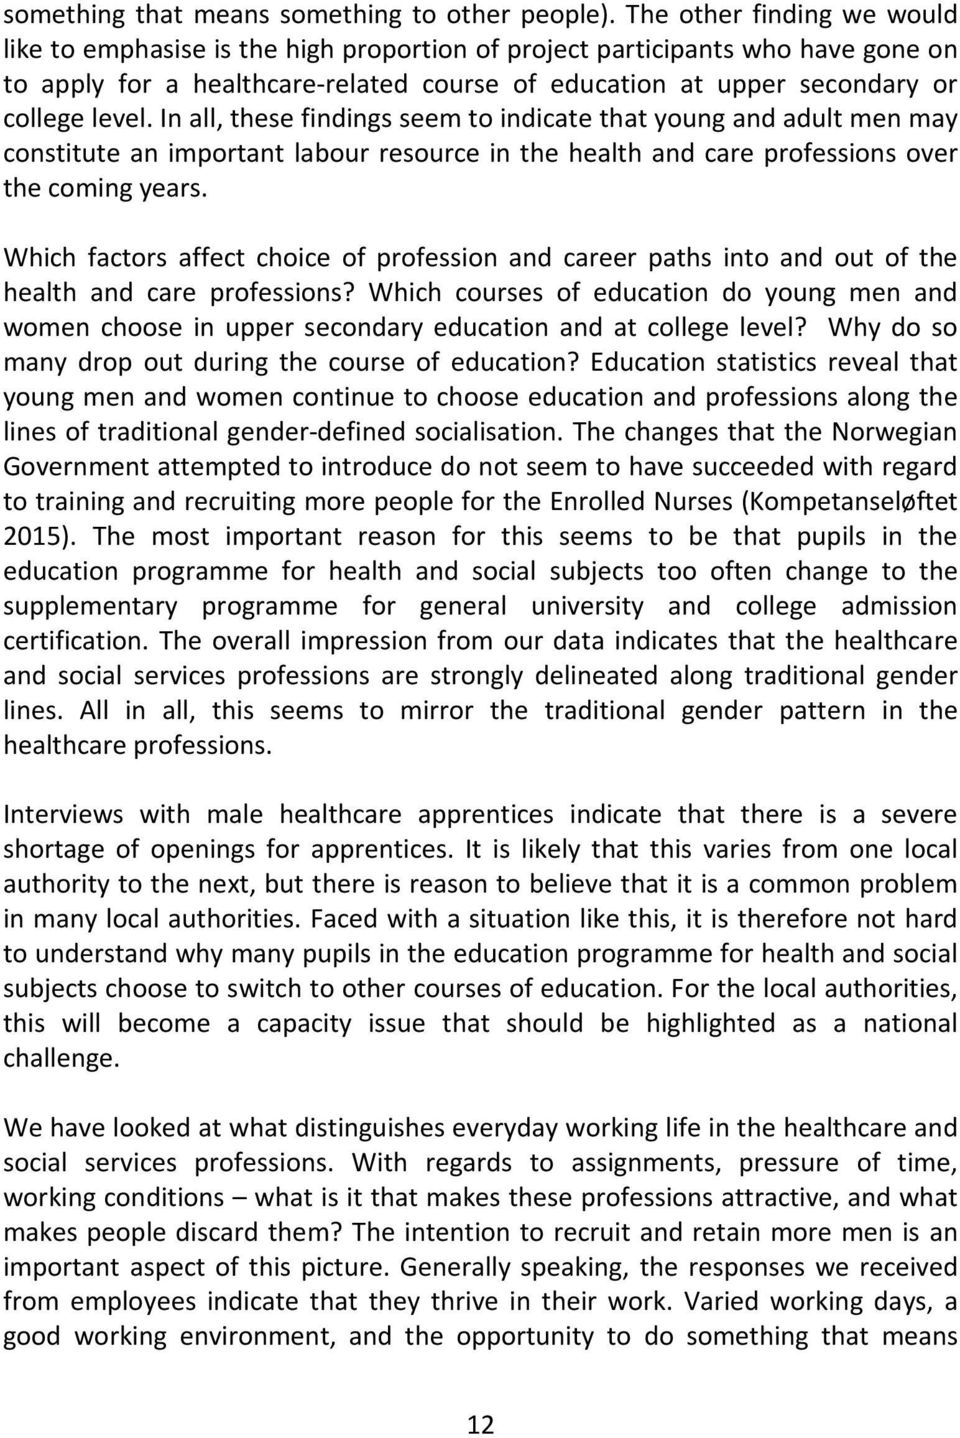 In all, these findings seem to indicate that young and adult men may constitute an important labour resource in the health and care professions over the coming years.